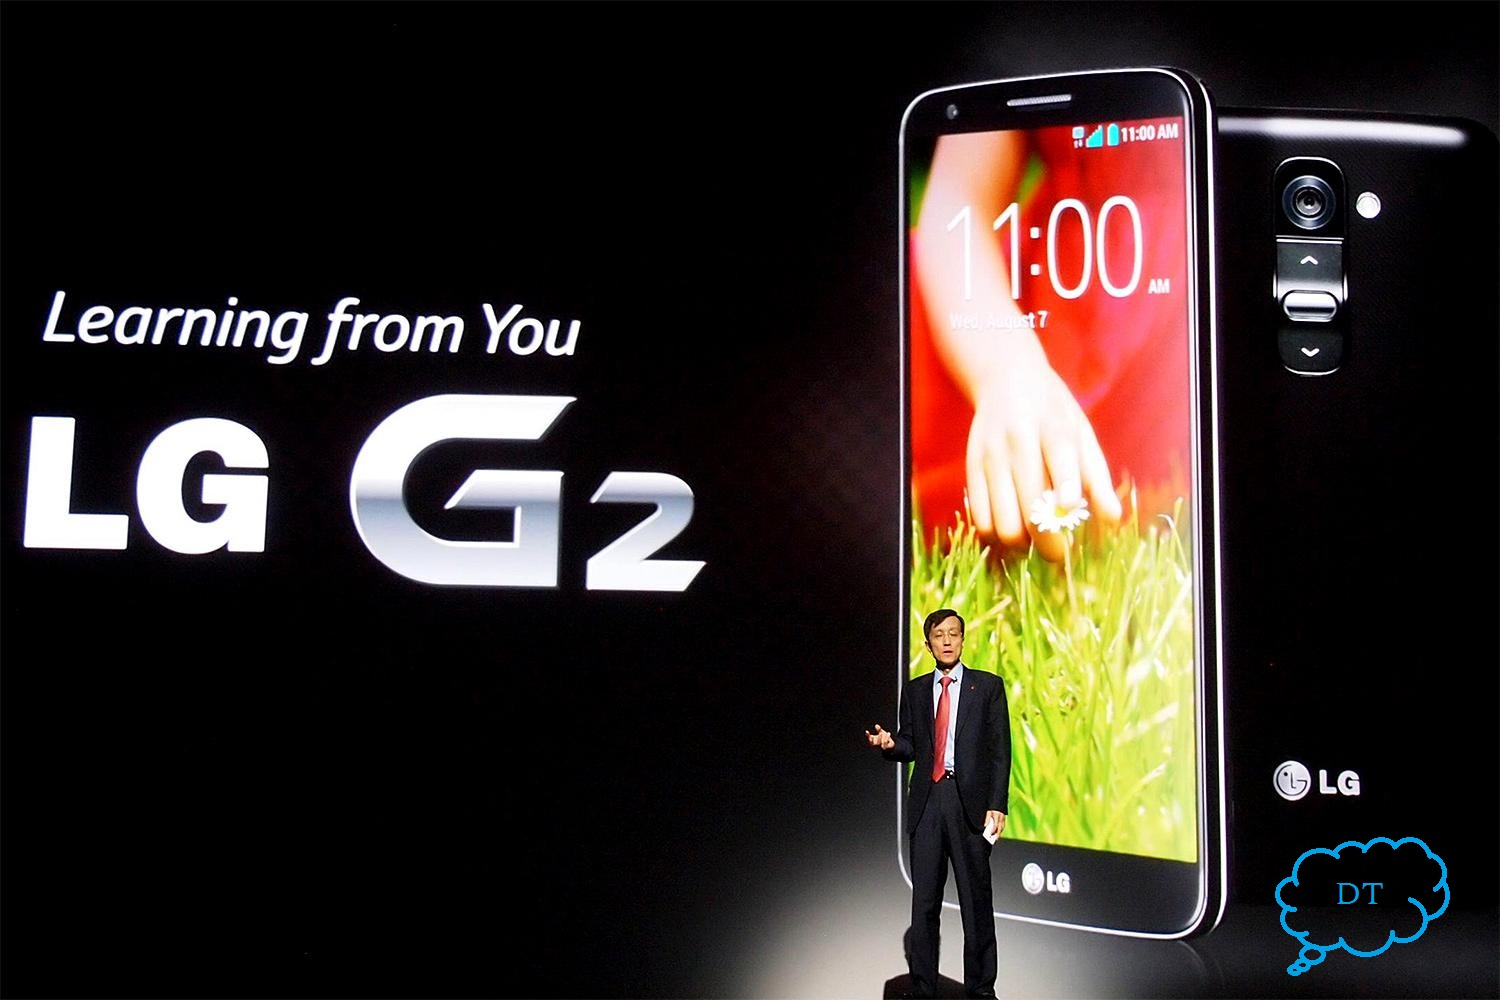 LG G2 Release Date: Rumors Of All Major US Carriers Getting LG ...